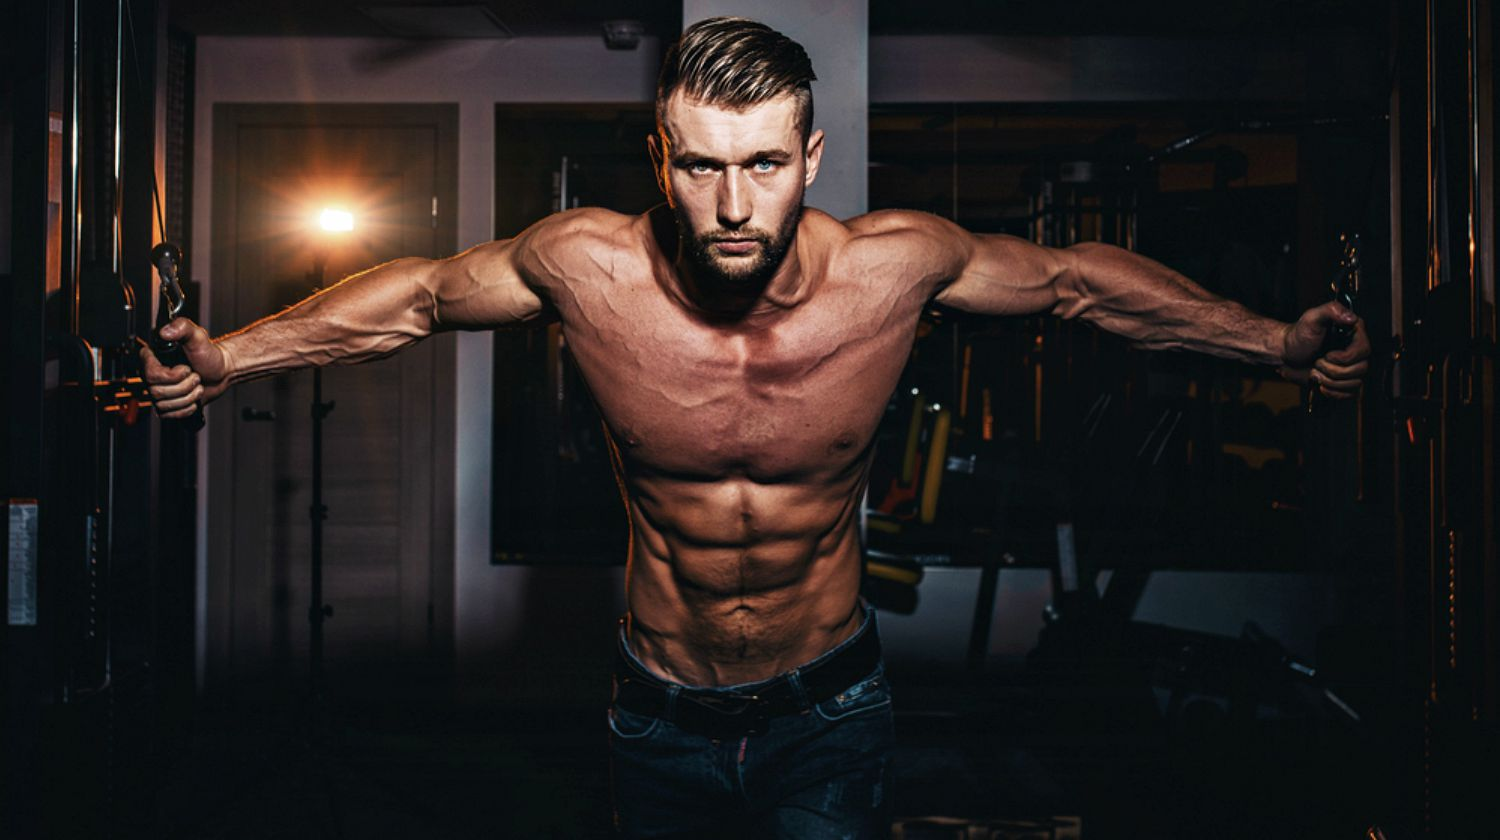 Feature | Man pumping up muscle | Your Ultimate Guide To Estrogen Blockers